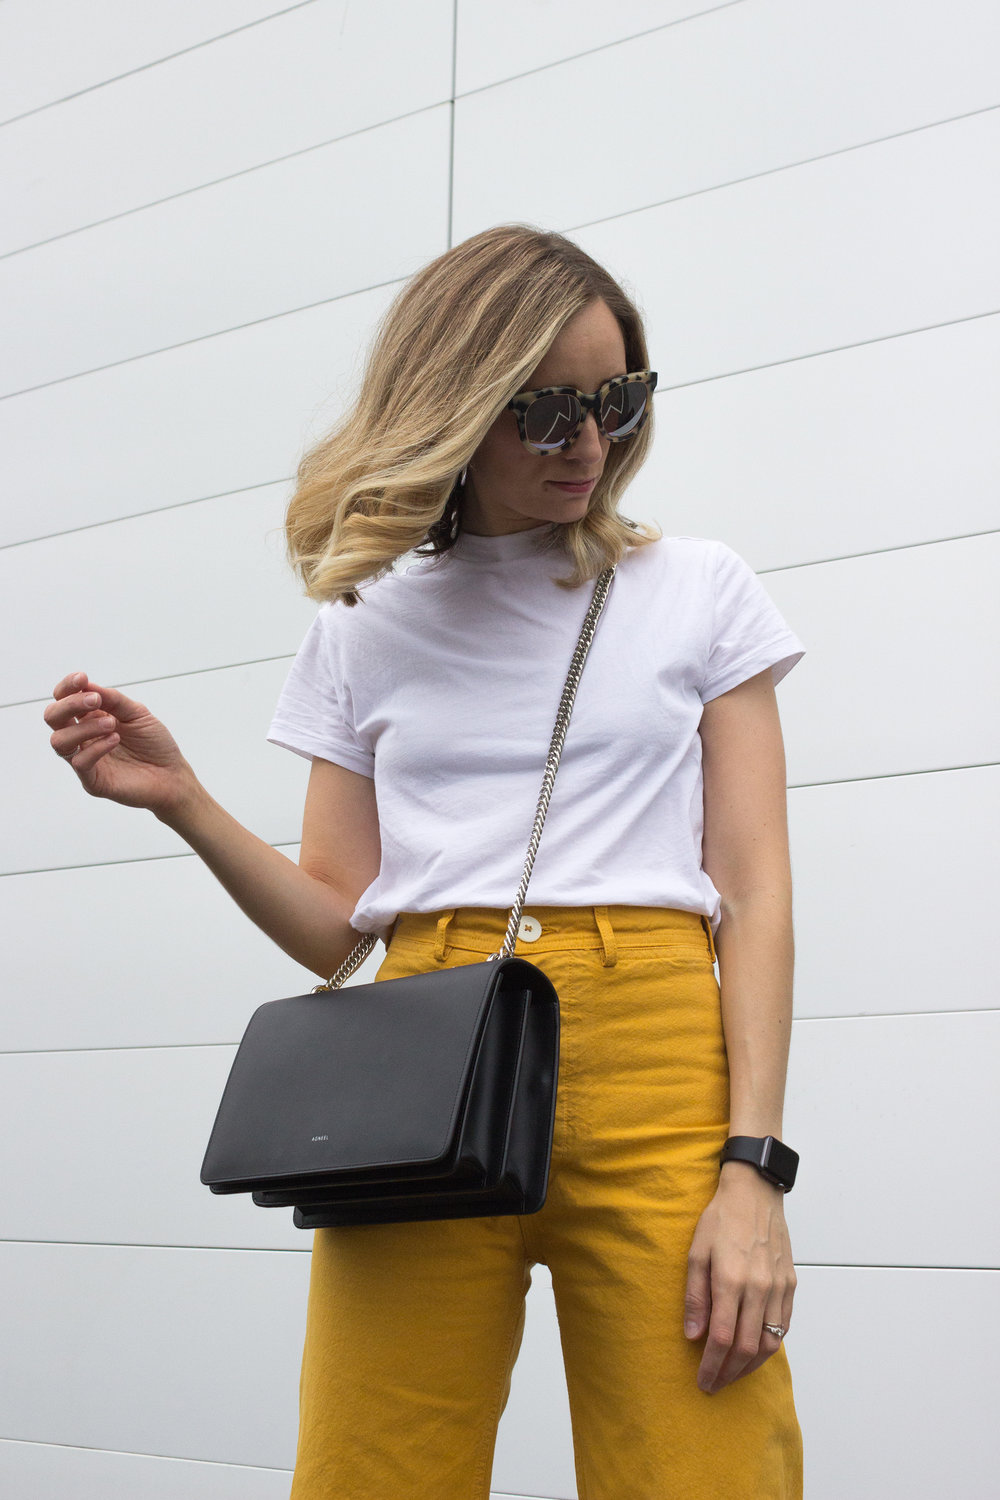 sharday-engel-jessie-kamm-yellow-pants-agneel-bag-vans-6.jpg